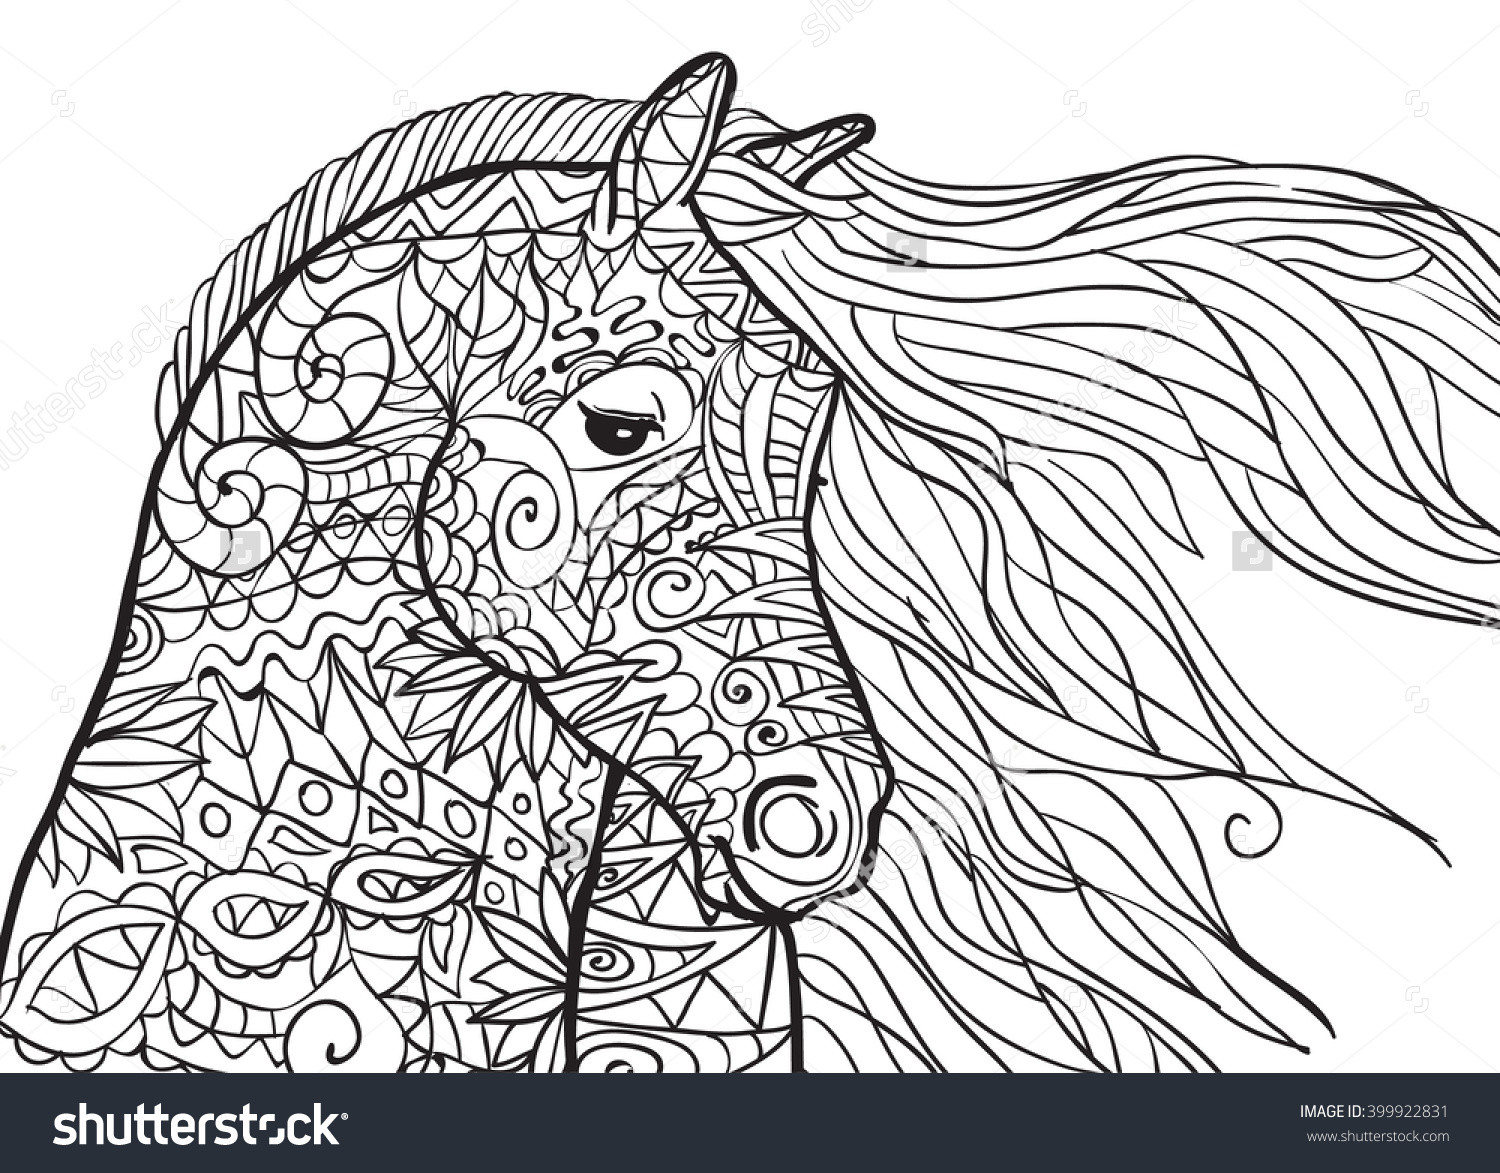 Adult Horse Coloring Pages  Adult Horse Coloring Pages